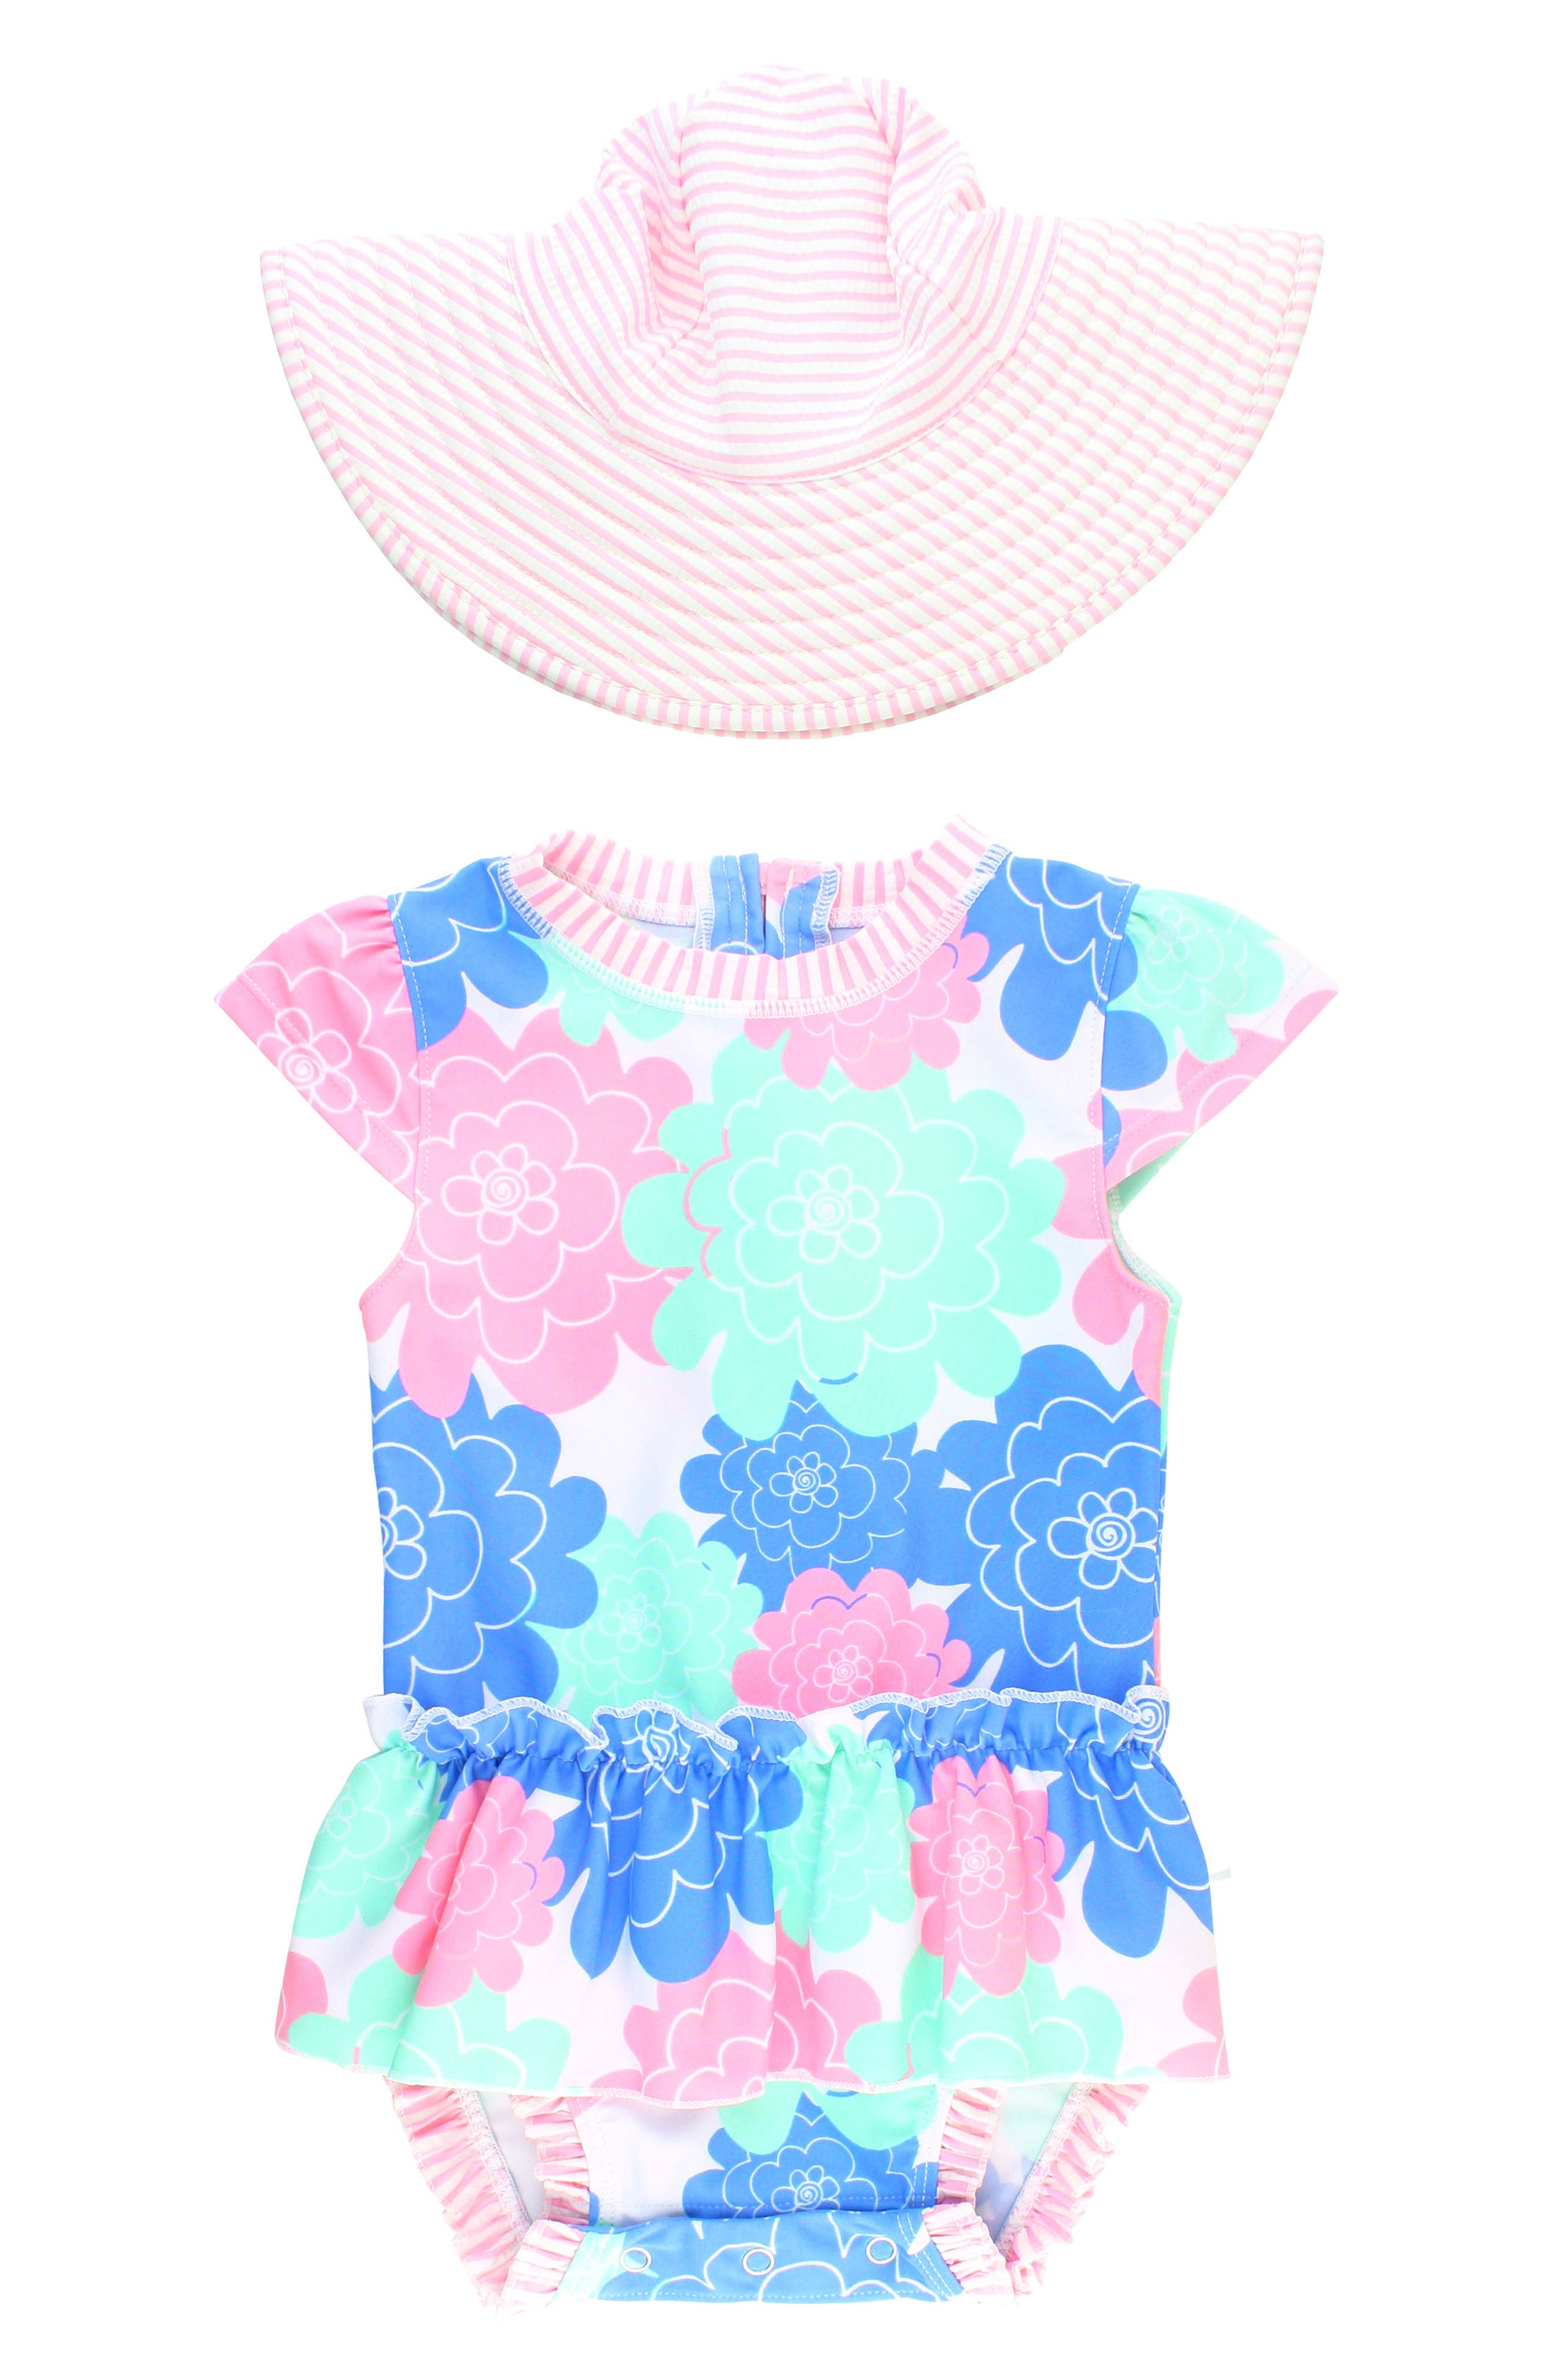 Alternate Image 1 Selected - Ruffle Butts Pastel Petals One-Piece Swimsuit & Hat Set (Baby Girls)